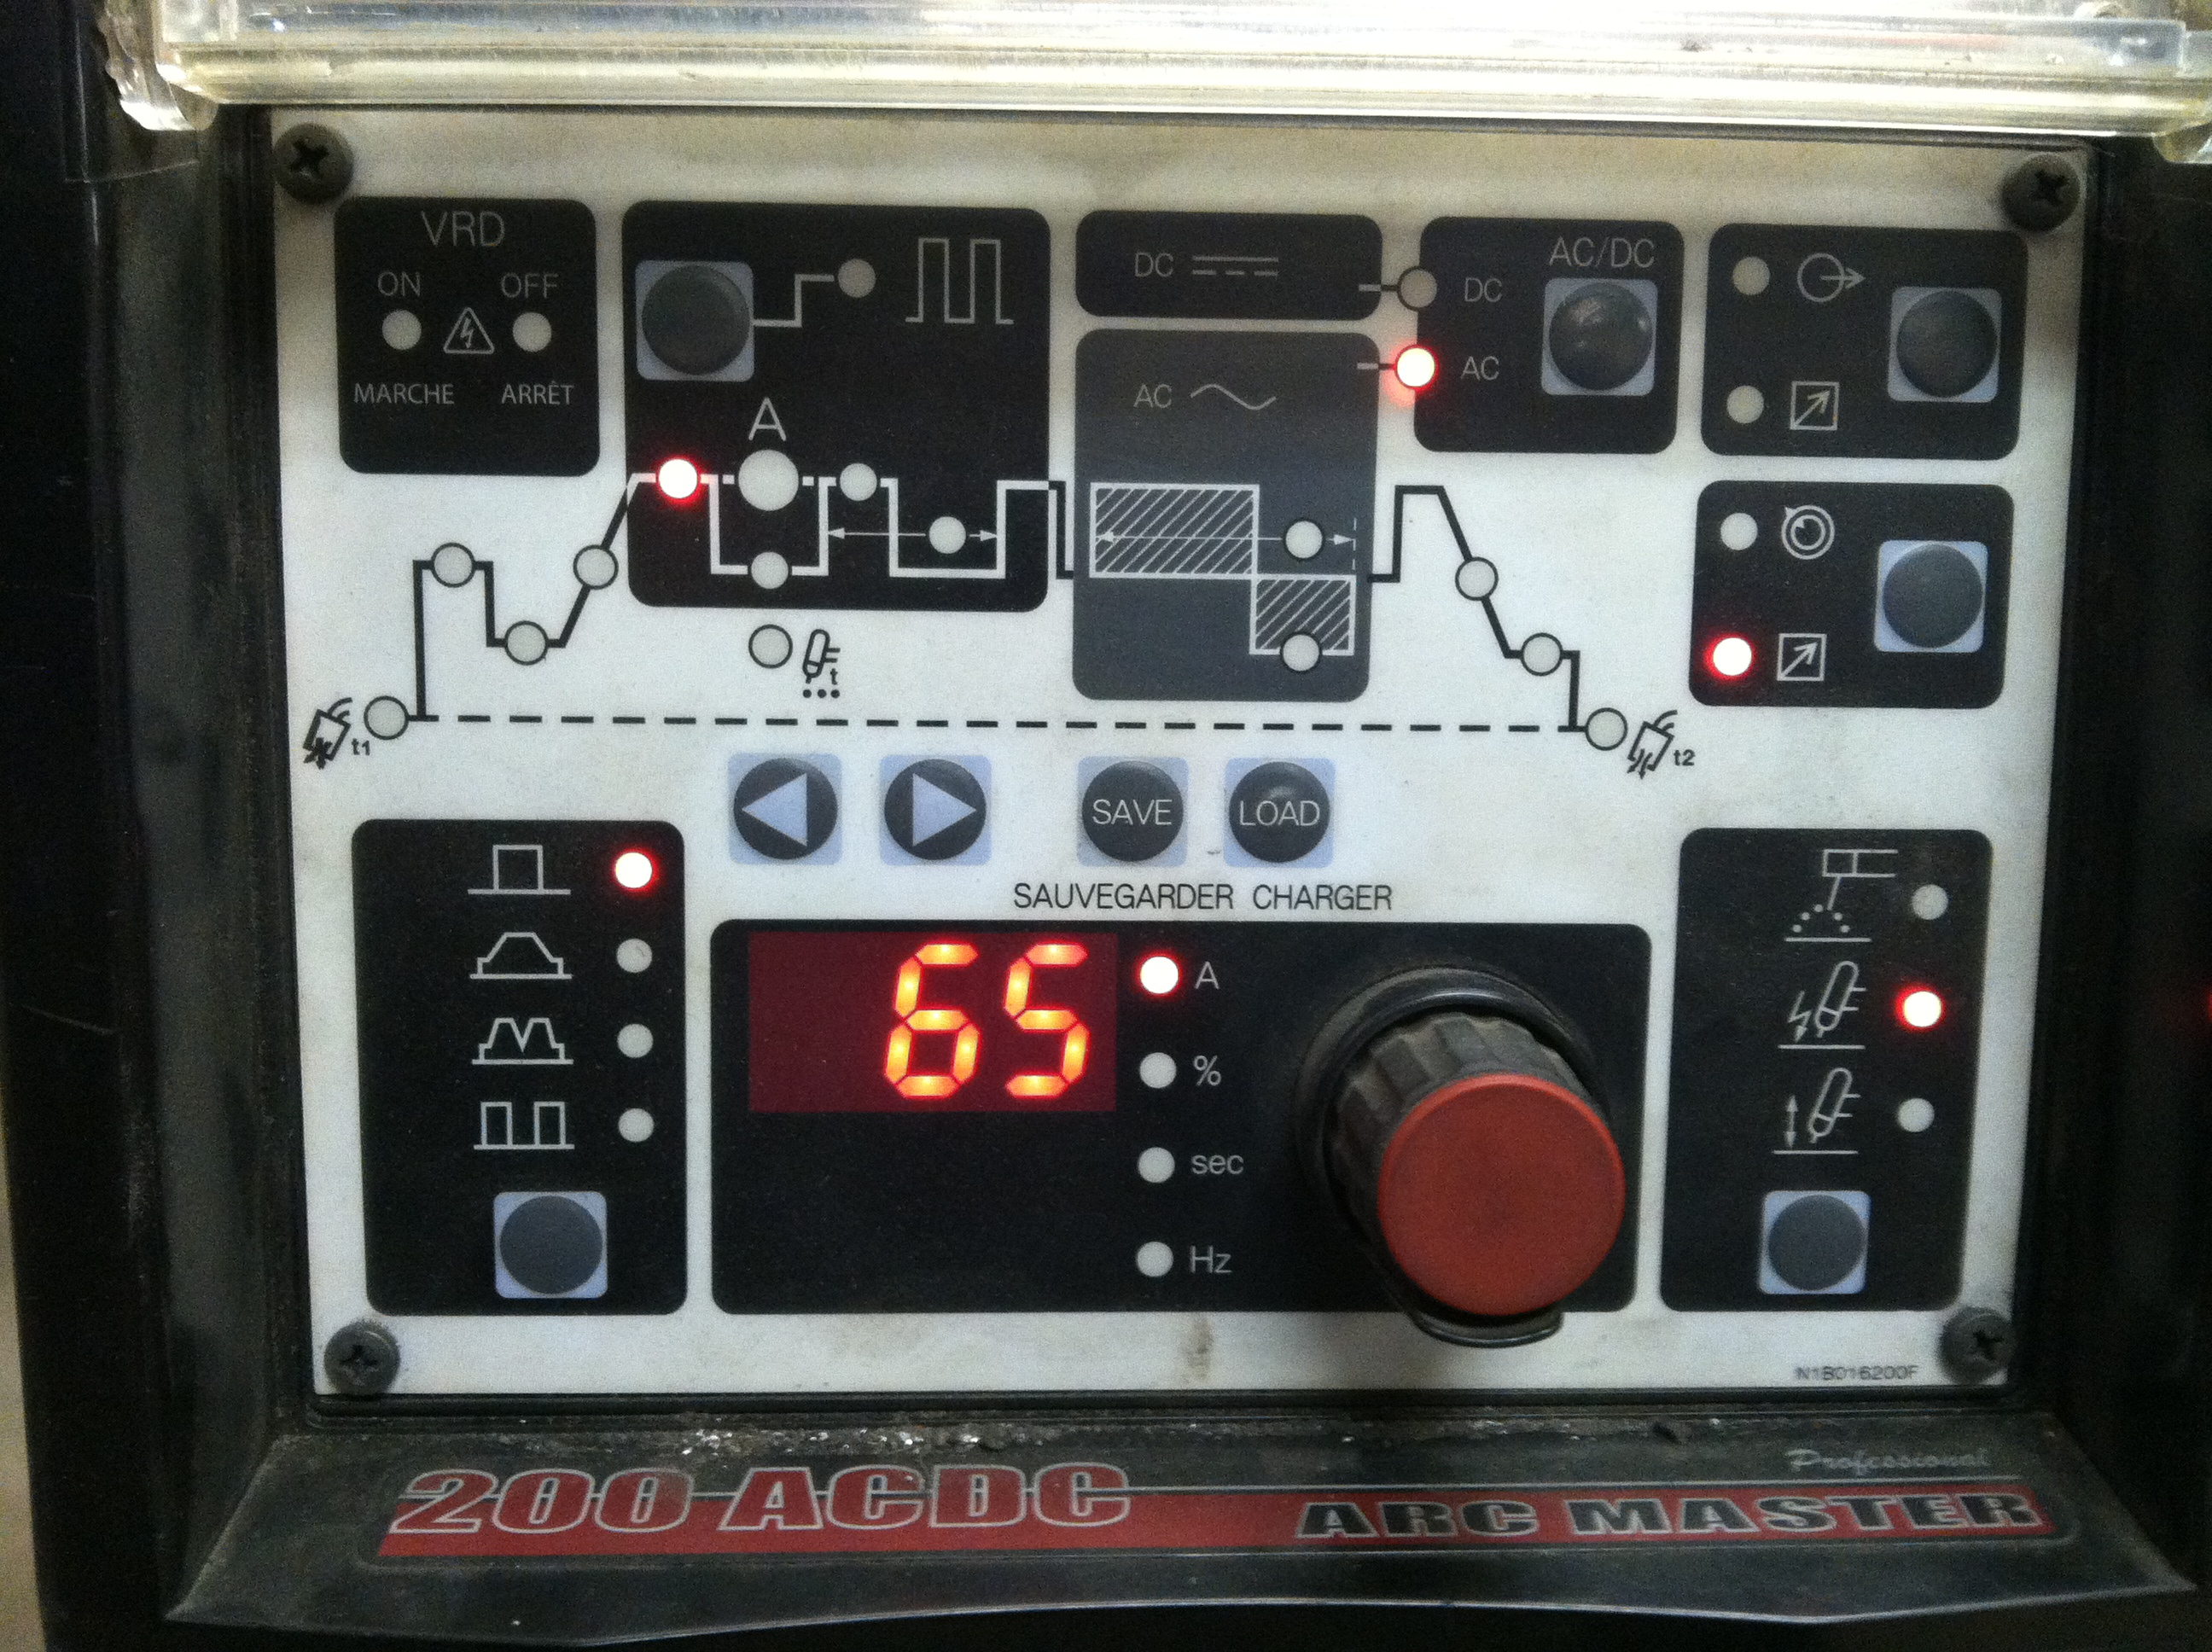 Picture of Machine Display Instructions